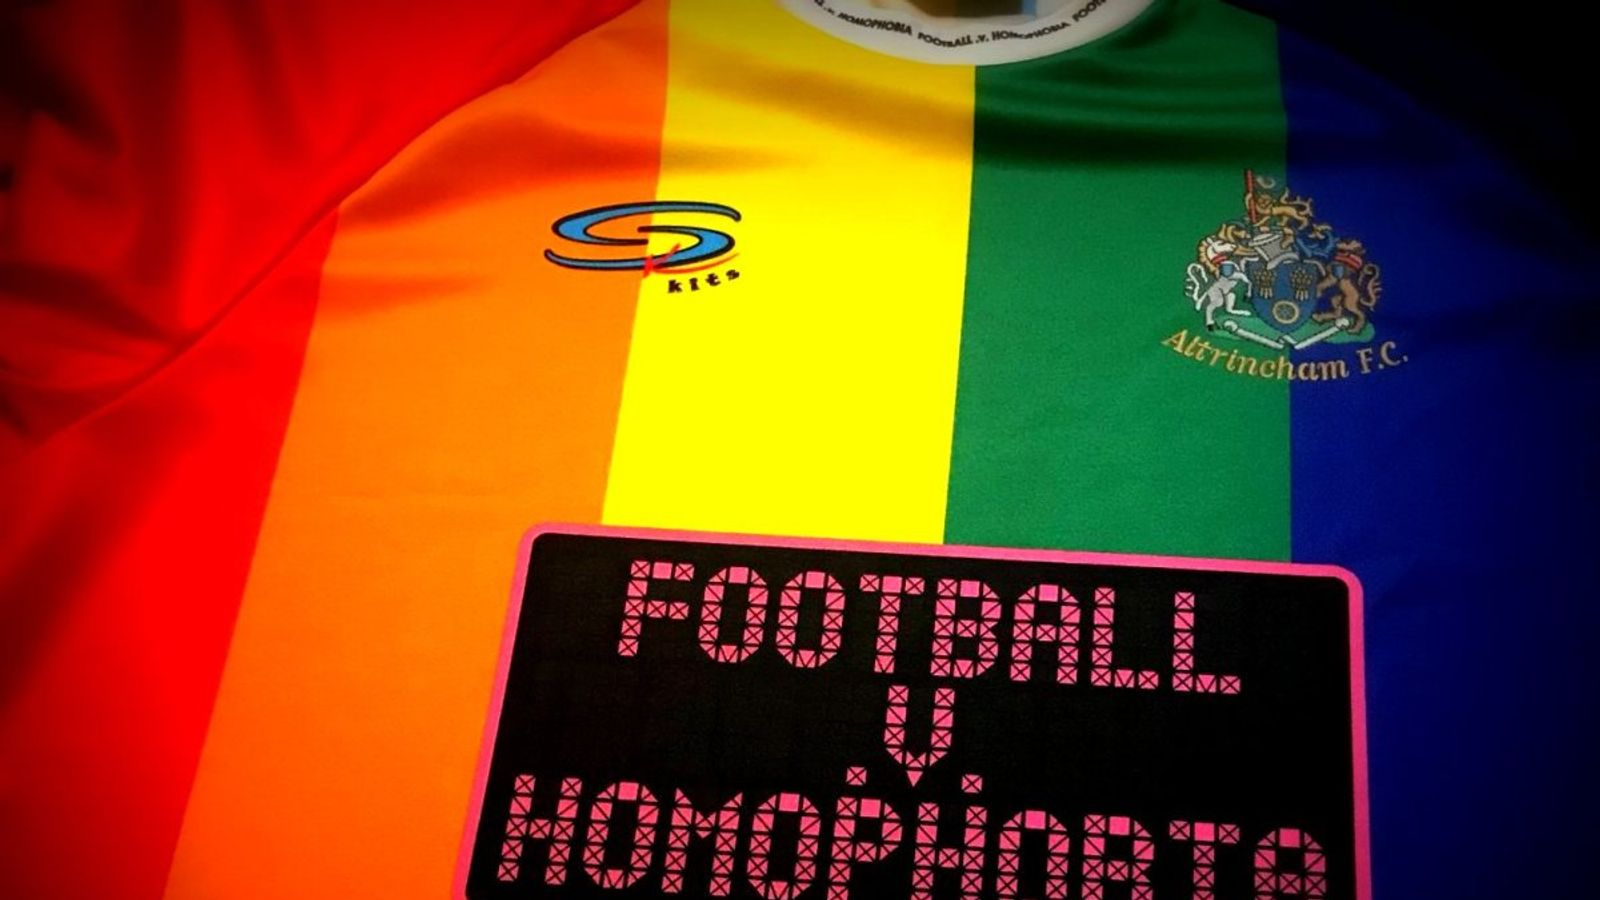 71a1c5979 Altrincham FC s rainbow kit for Football v Homophobia sparks global  interest.